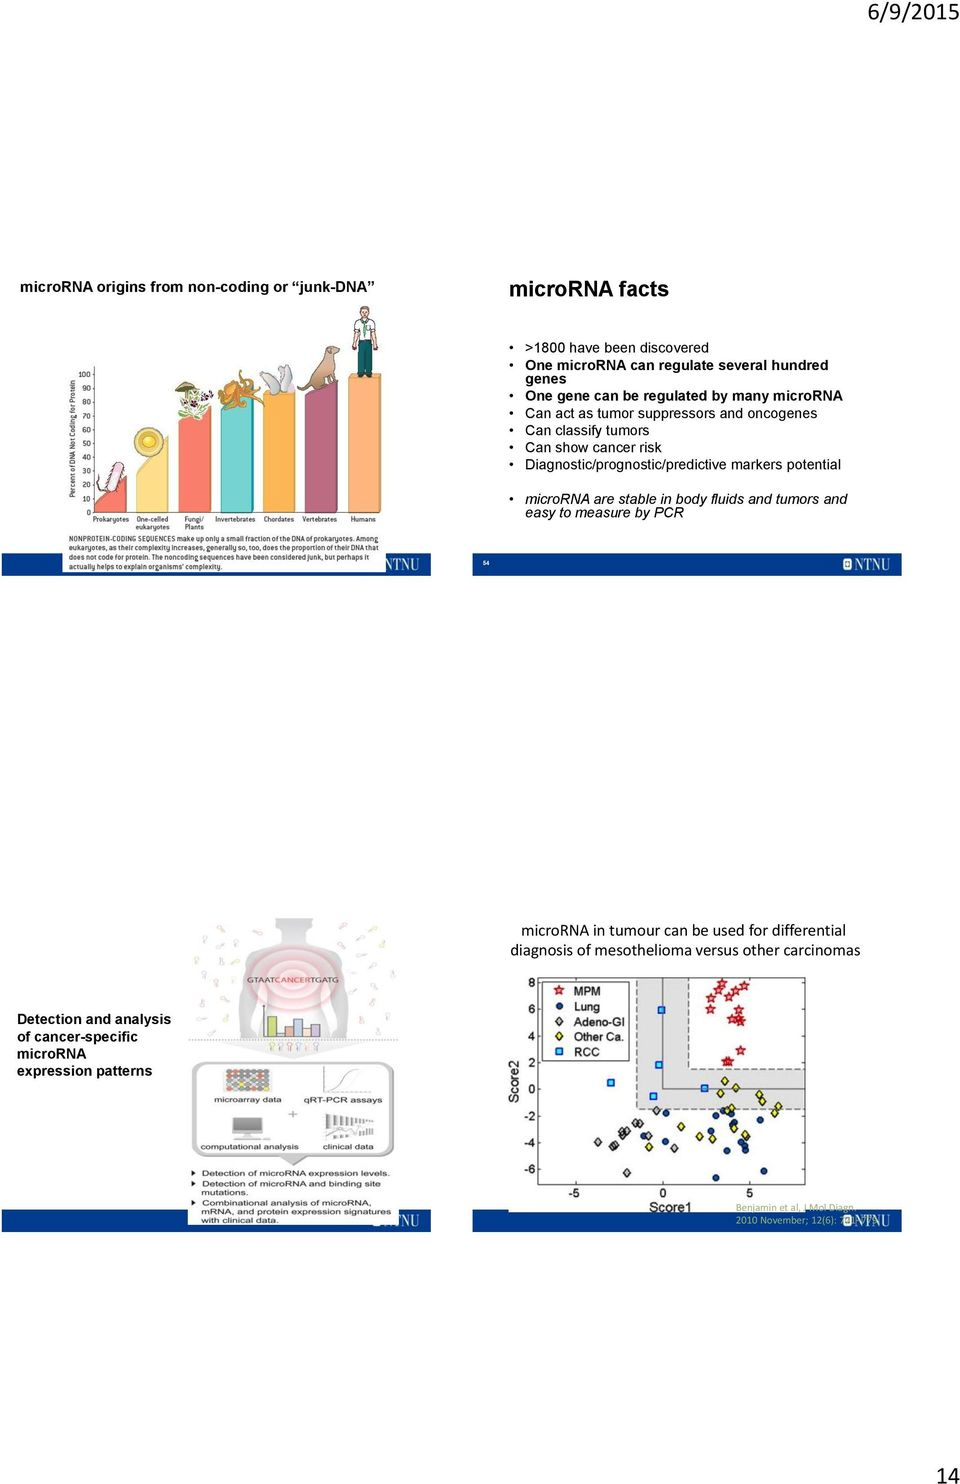 potential microrna are stable in body fluids and tumors and easy to measure by PCR 54 microrna in tumour can be used for differential diagnosis of